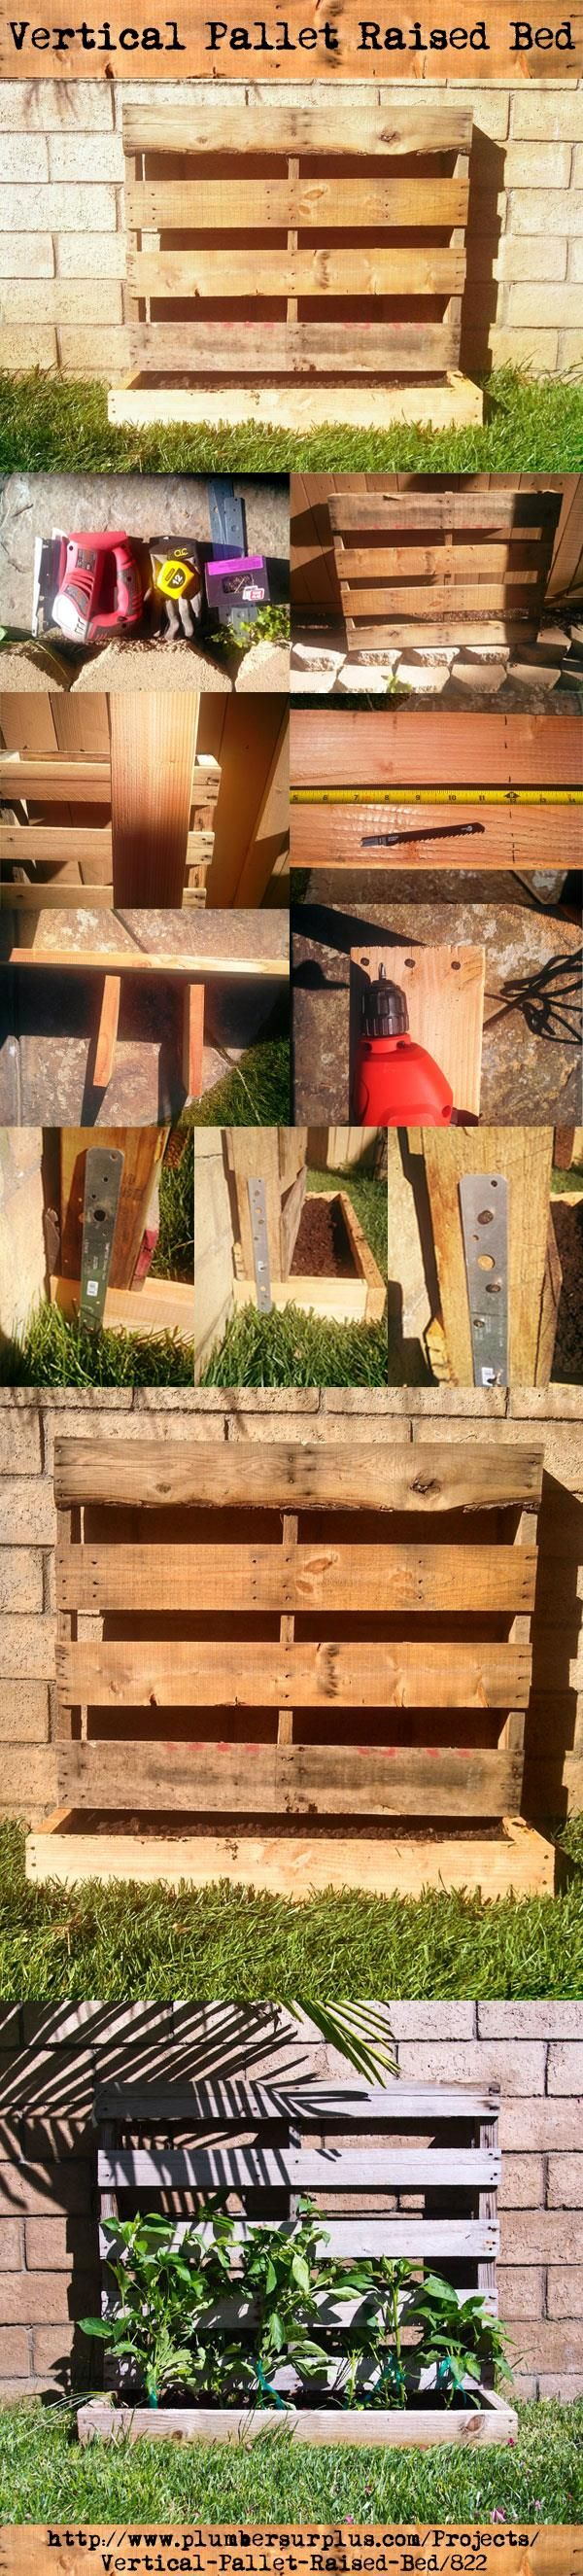 Vertical Pallet Raised Bed Info-graphic http://www ...